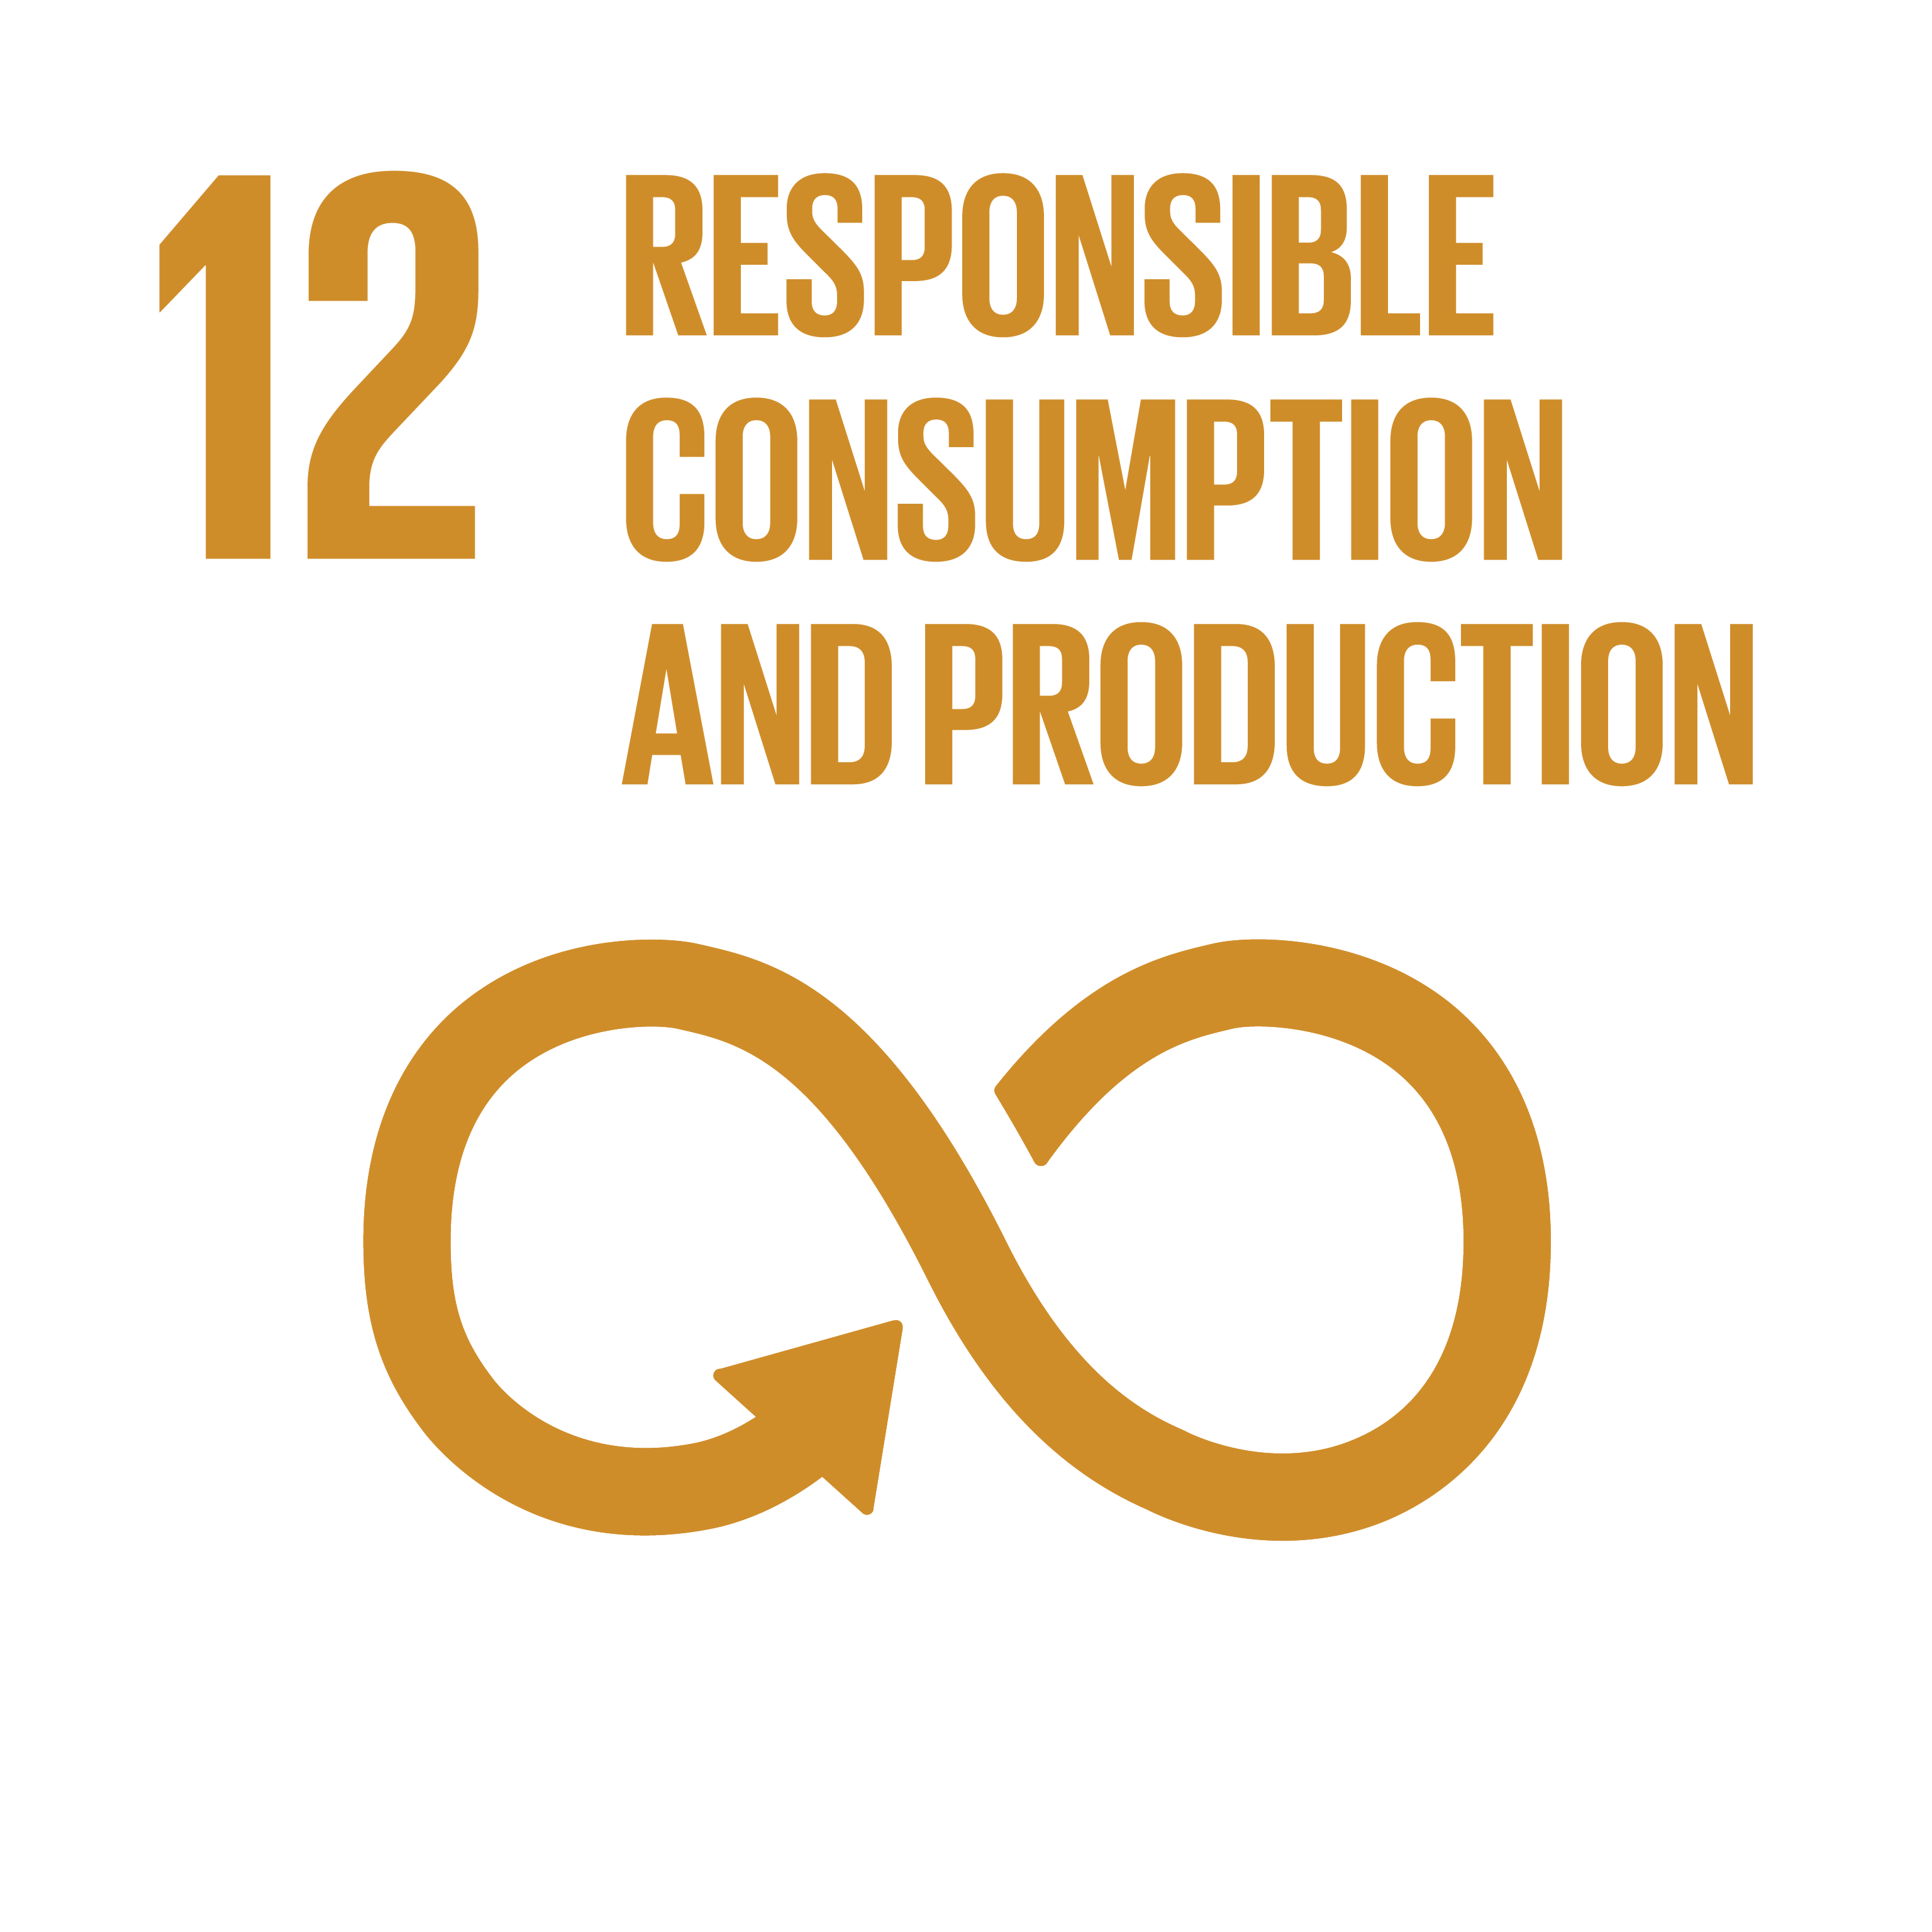 Sustainable Development Goals 12 responsible consumption production